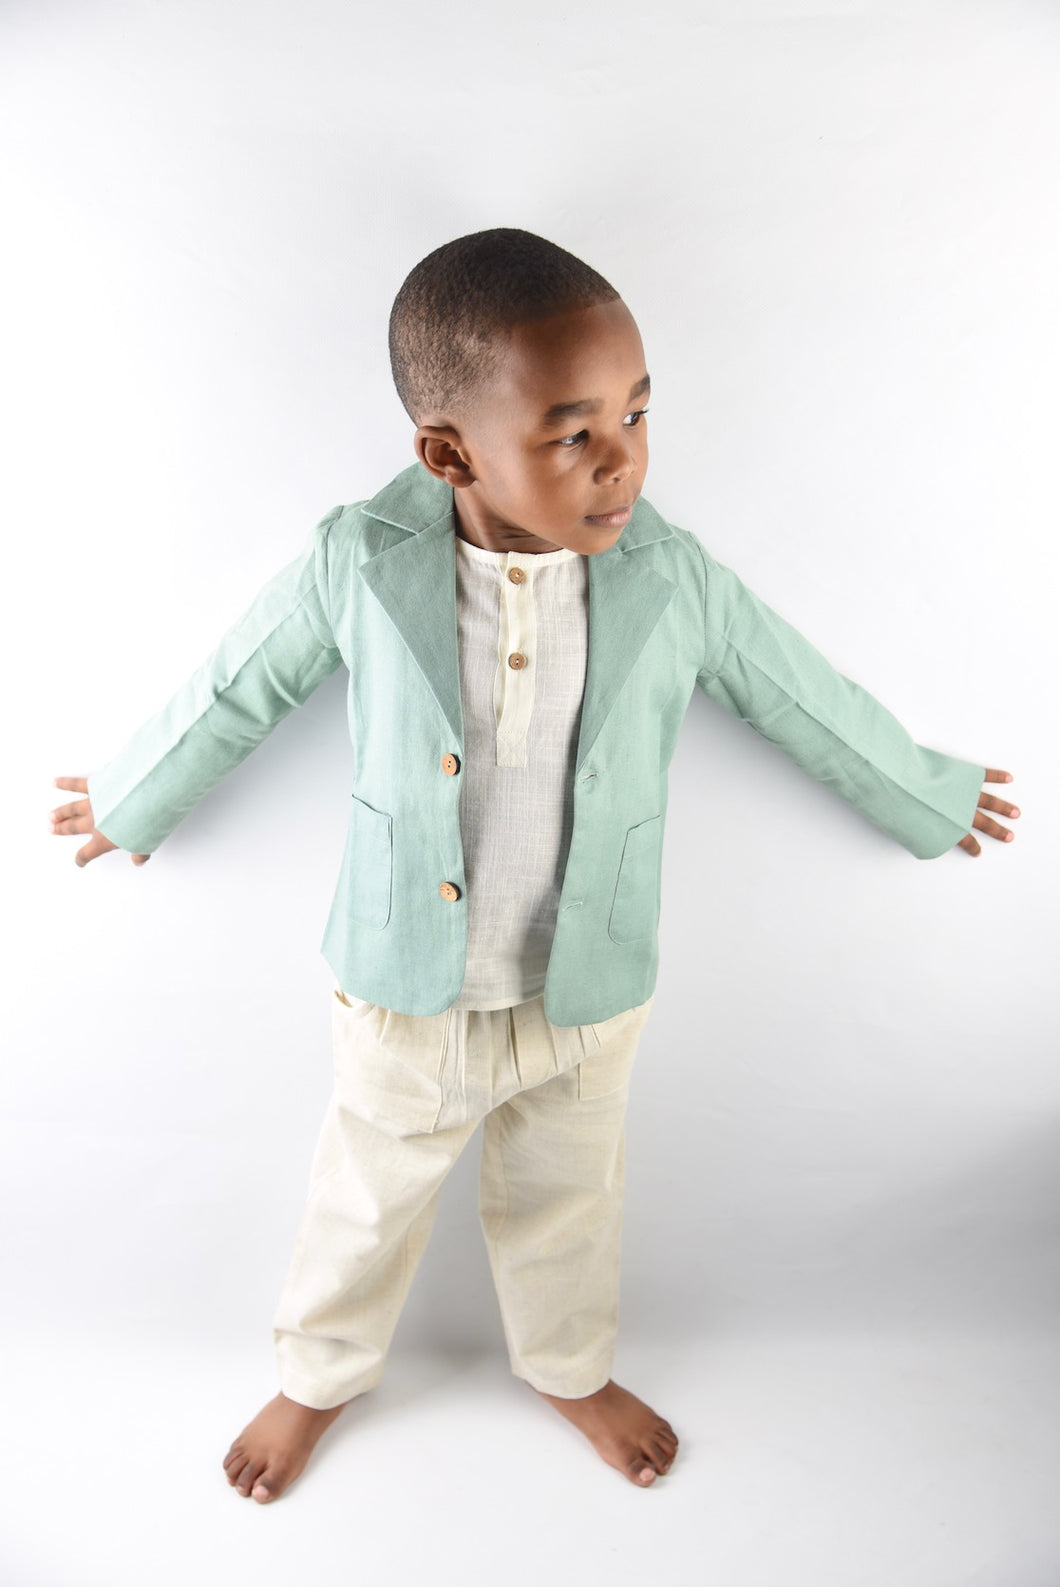 Boys Blazer & Pants Set - Mint/Ivory - Kids Wholesale Boutique Clothing, Boys - Girls Dresses, Yo Baby Wholesale - Yo Baby